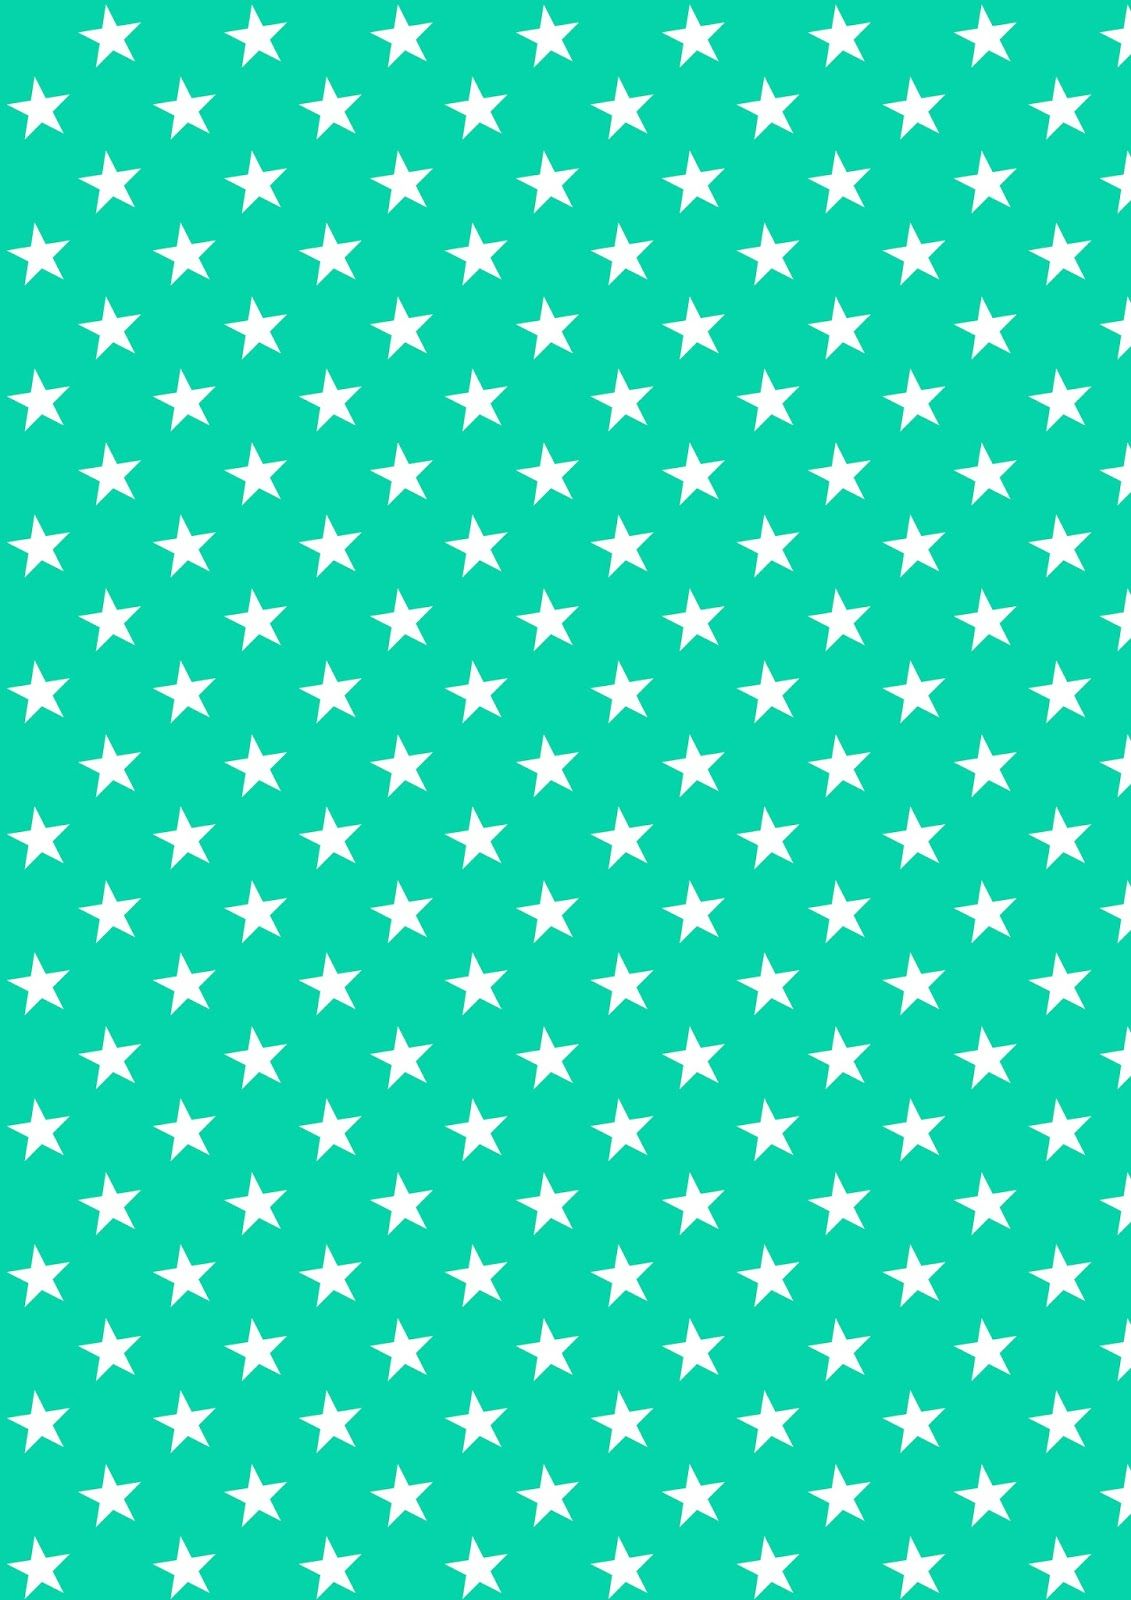 graphic relating to Printable Pattern Paper called Absolutely free electronic star sbooking paper - ausdruckbares